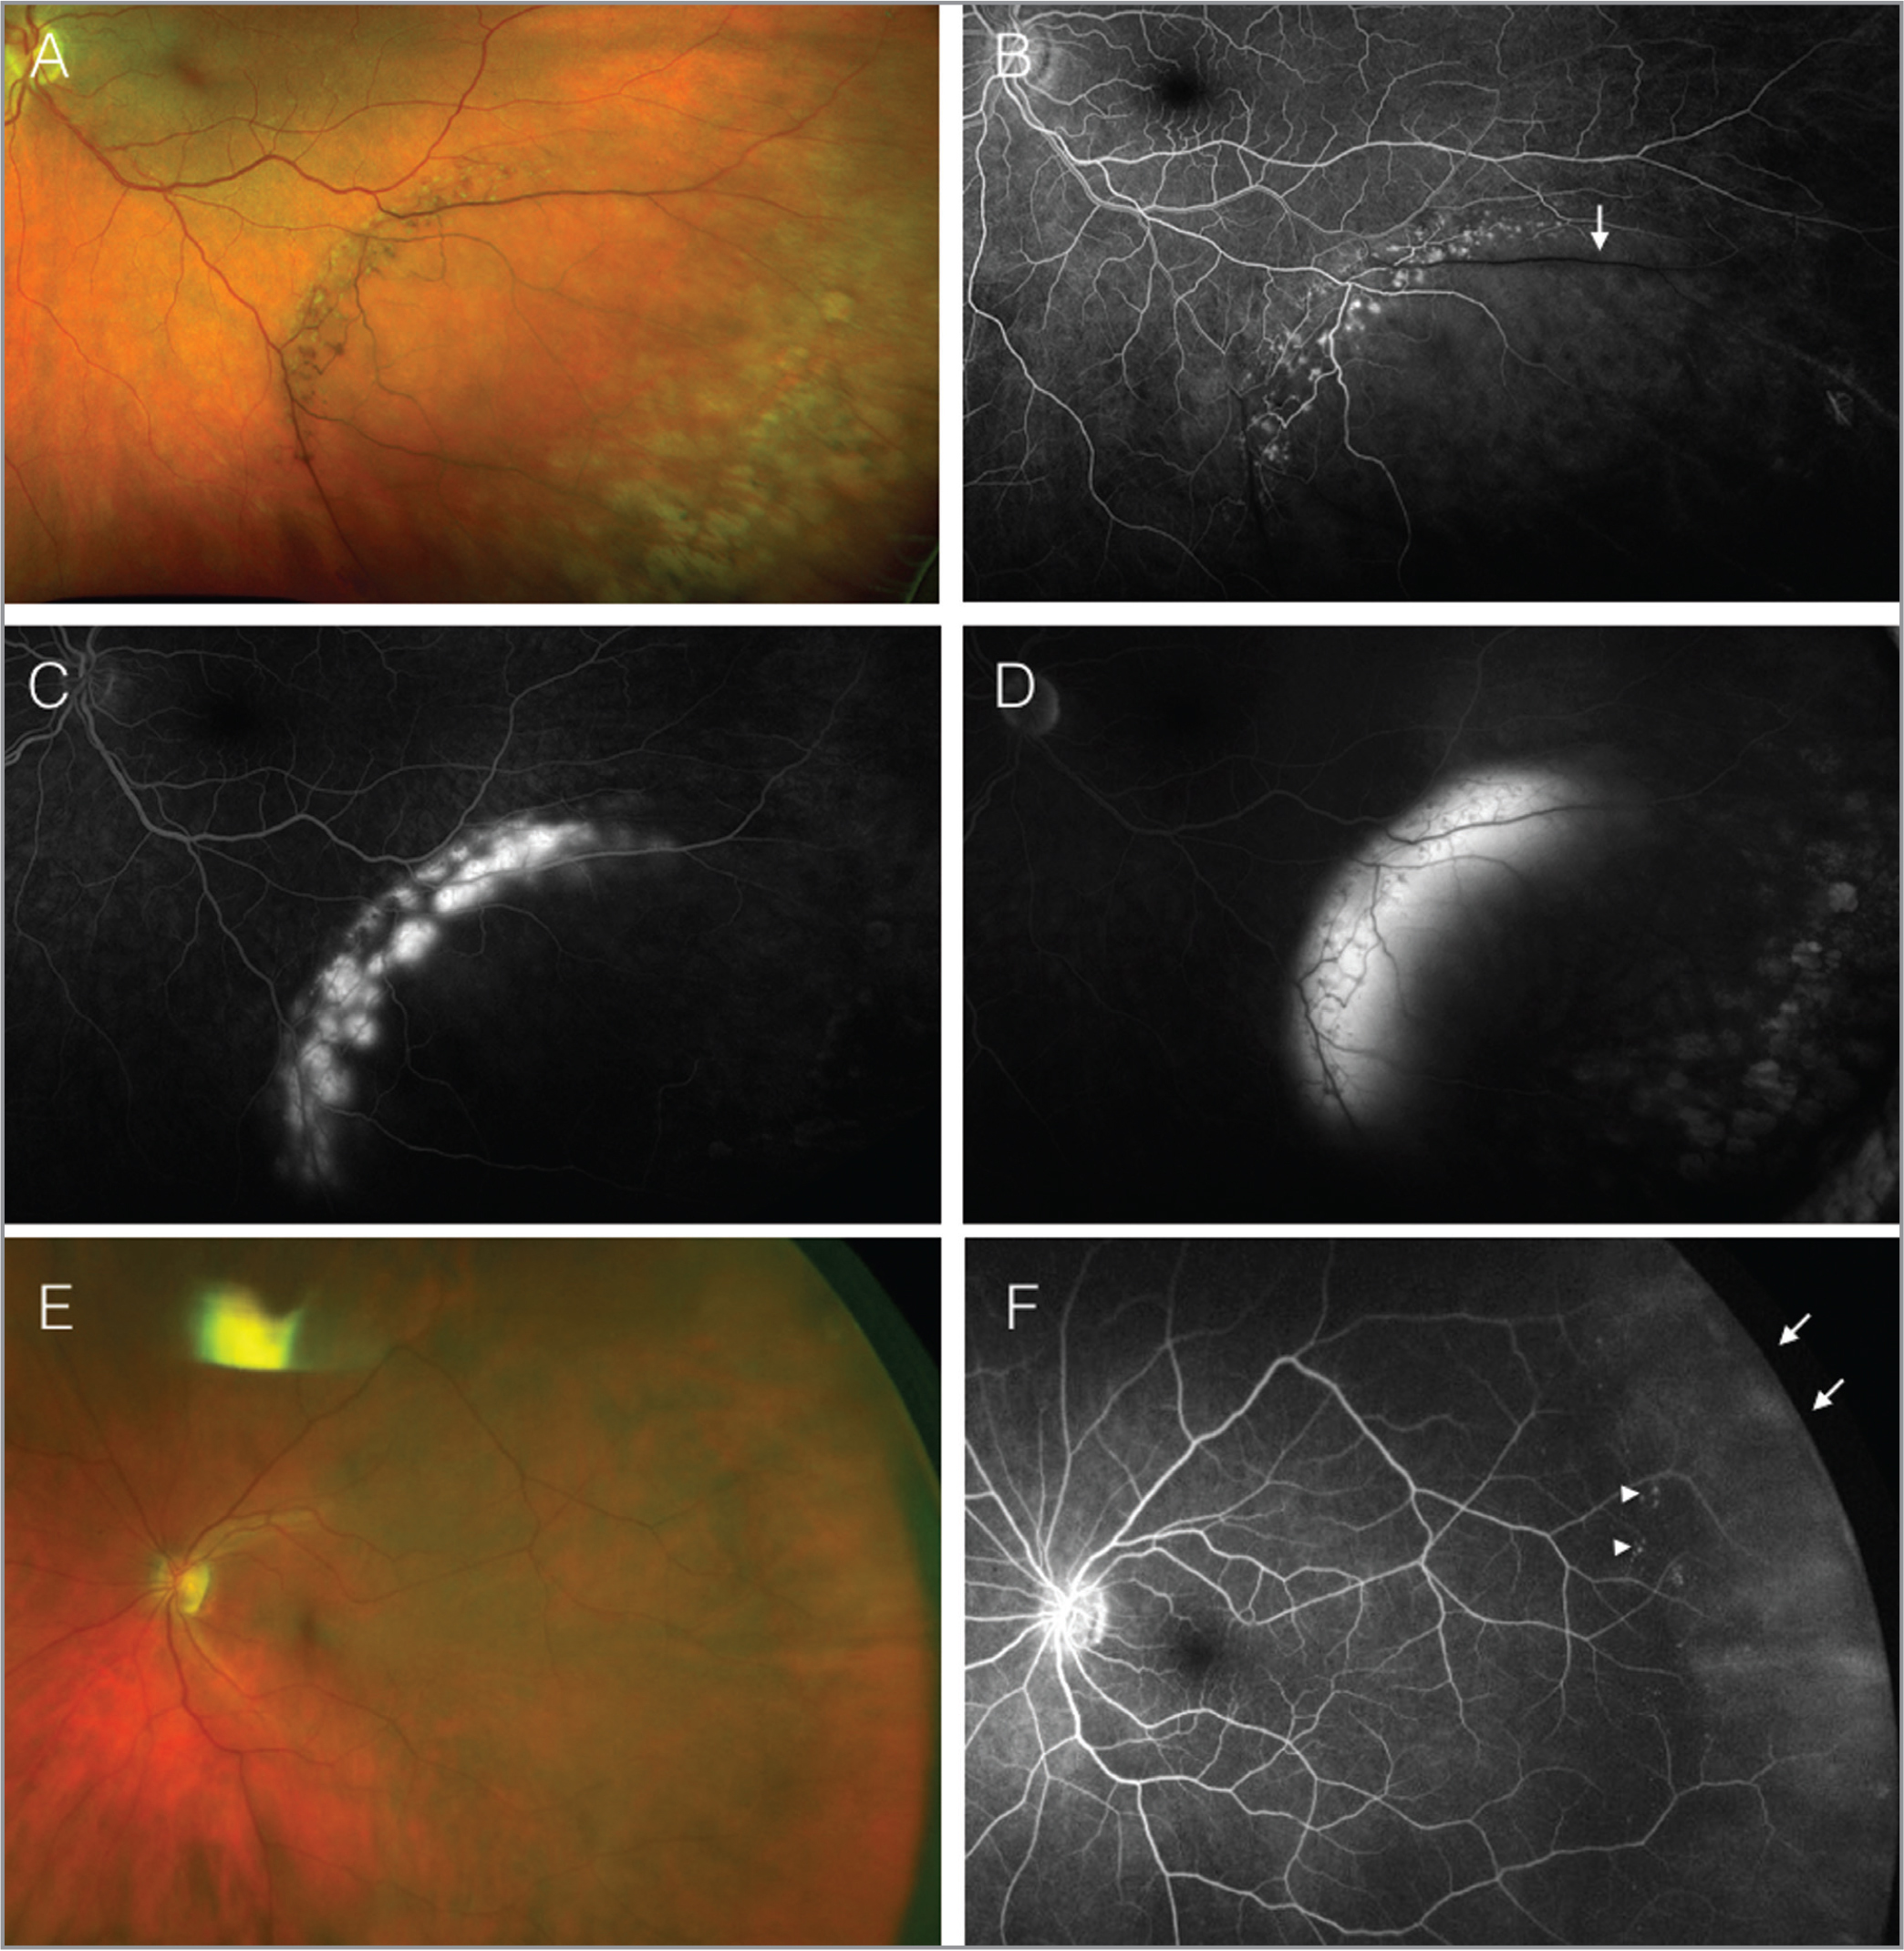 Representative pseudocolor (A) and fluorescein angiography (B–D) ultra-widefield images of a patient with degenerative retinoschisis (RS). Early (B), mid- (C), and late-phase angiograms illustrate diffuse retinal vascular leakage at the border of the schisis cavity that emanates from the deep retinal capillary plexus. Notice the delayed vascular filling of the retinal vein over the schisis cavity (B, arrow), despite the presence of laminar flow elsewhere (B). Peripheral shallow RS (E) with diffuse vascular leakage in a ground glass pattern (F, arrows). There are microaneurysmal-like hyperfluorescent lesions at the edge of the schisis (F, arrowheads).